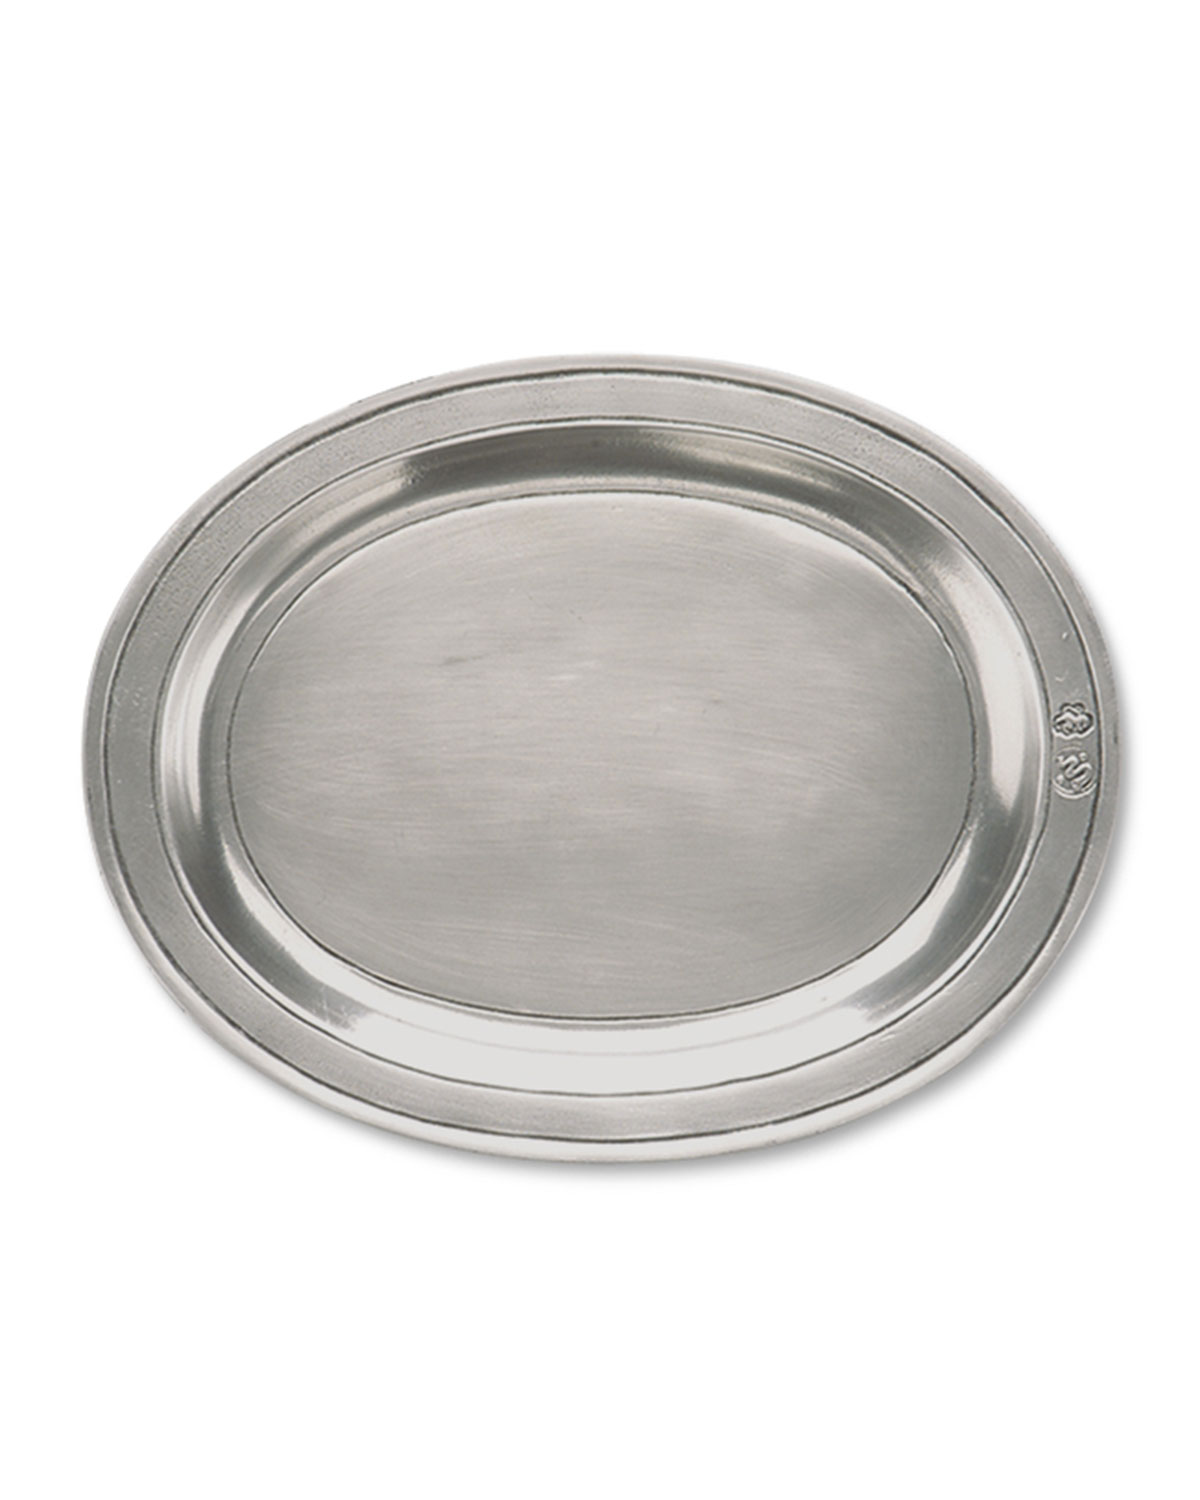 Match Clothing SMALL OVAL INCISED TRAY